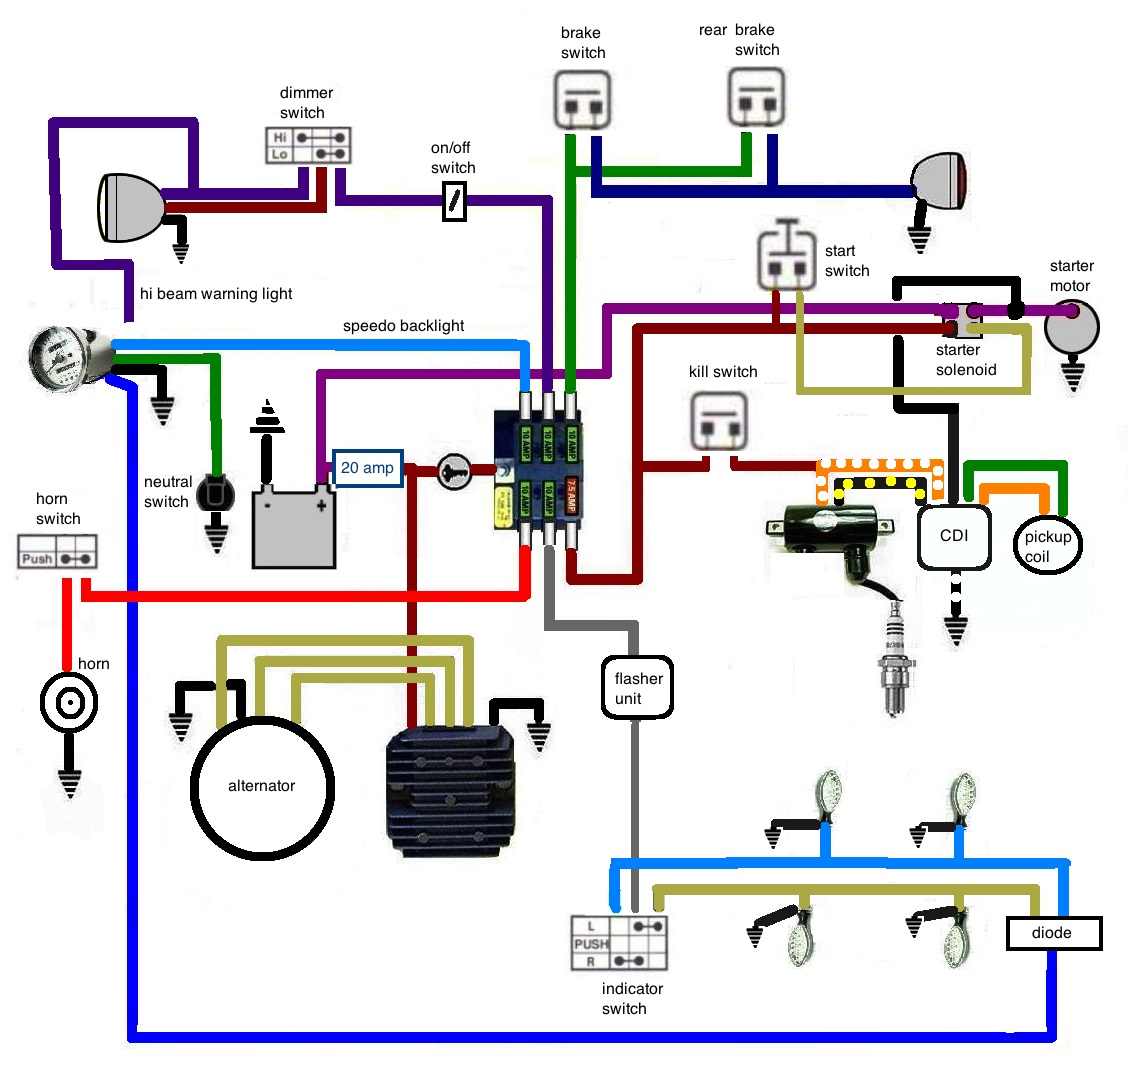 SuzukiSavage     fuse       block    Wiring    Diagram